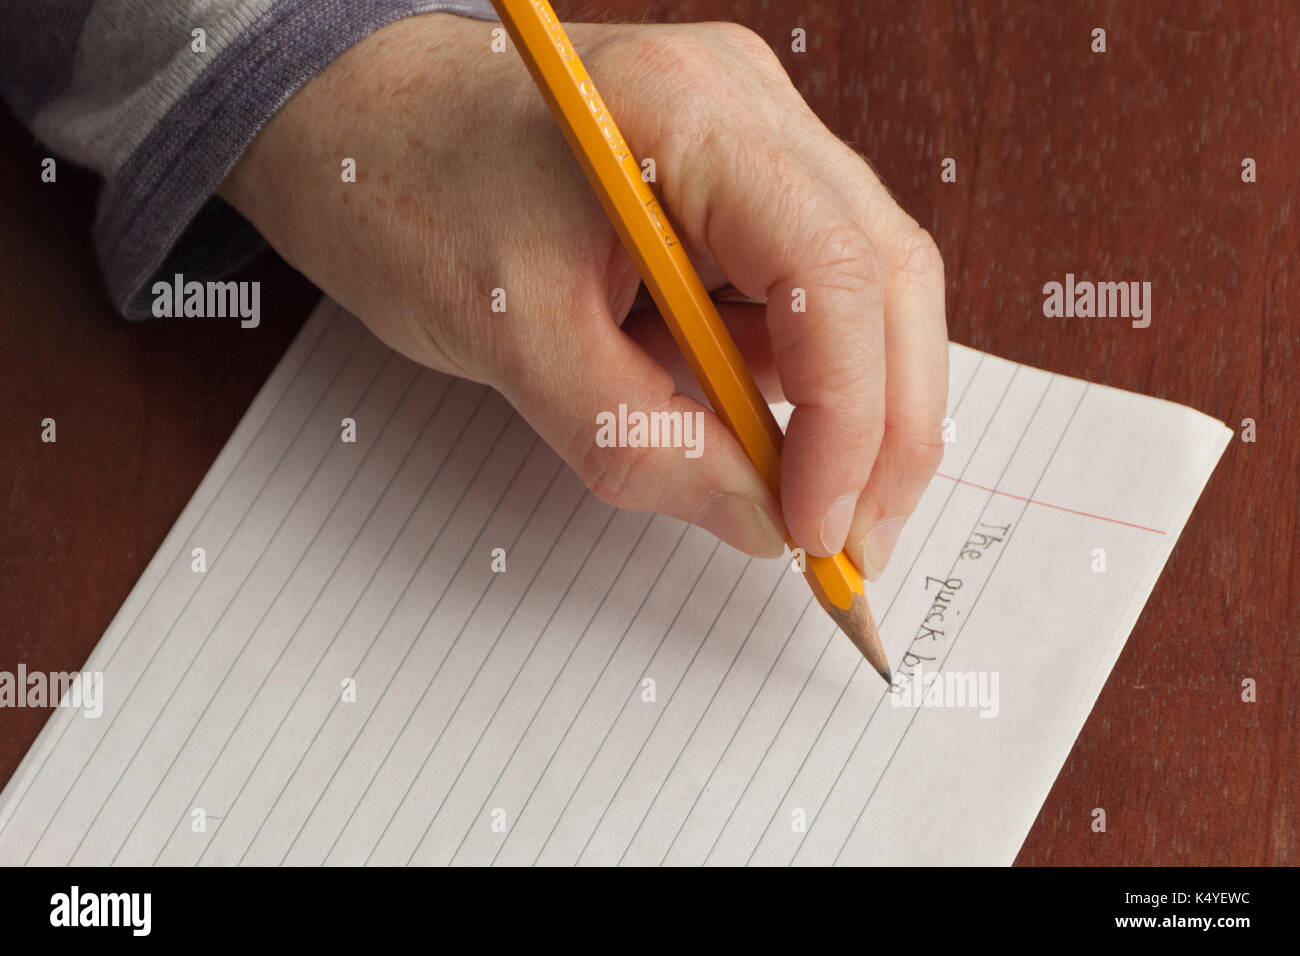 Left hand writing with pencil - Stock Image